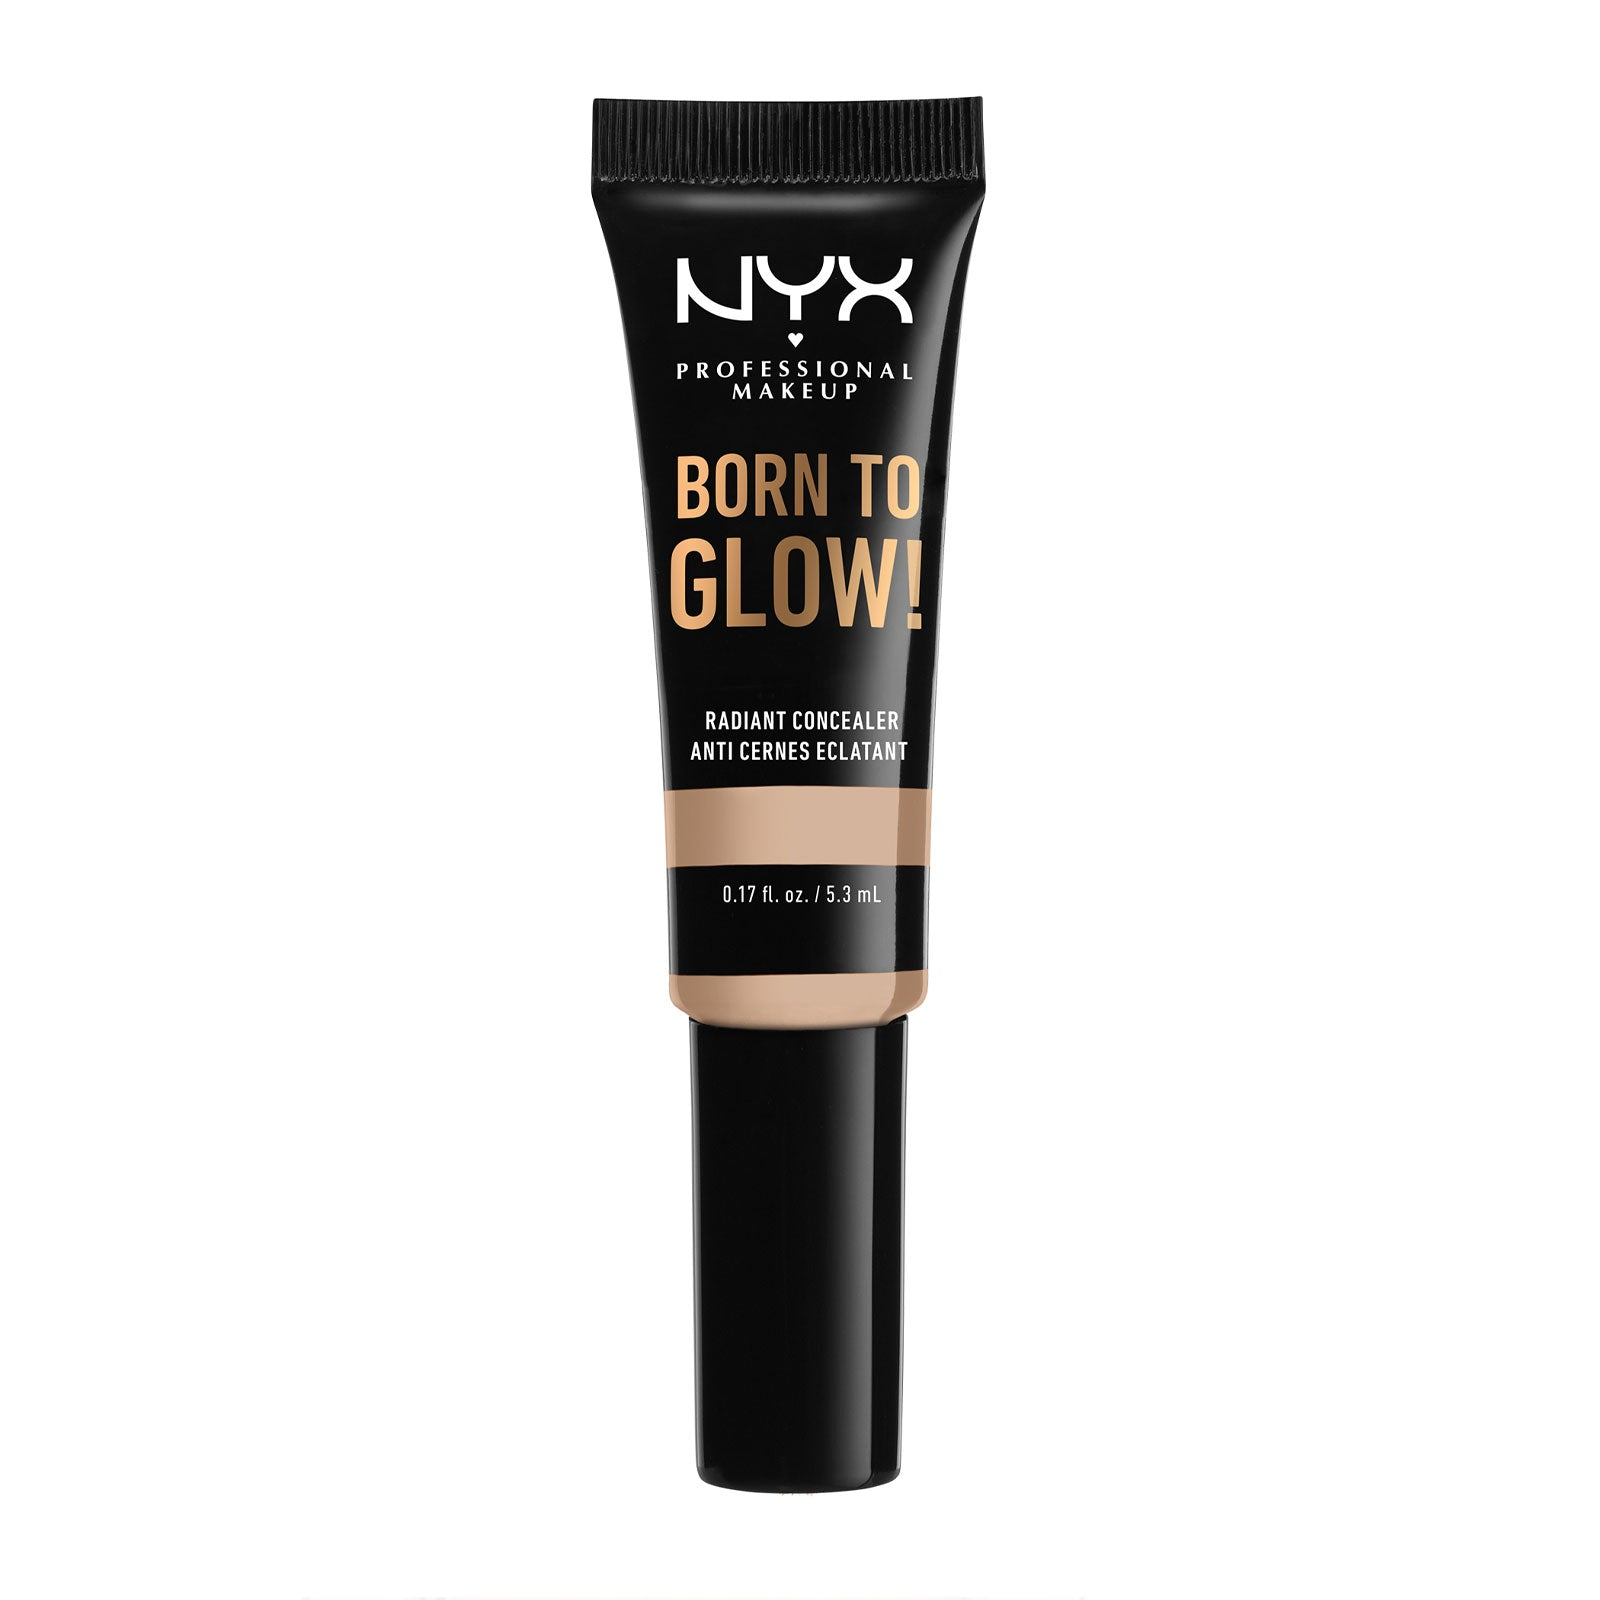 NYX Professional Makeup Born To Glow Radiant Concealer 5.3ml